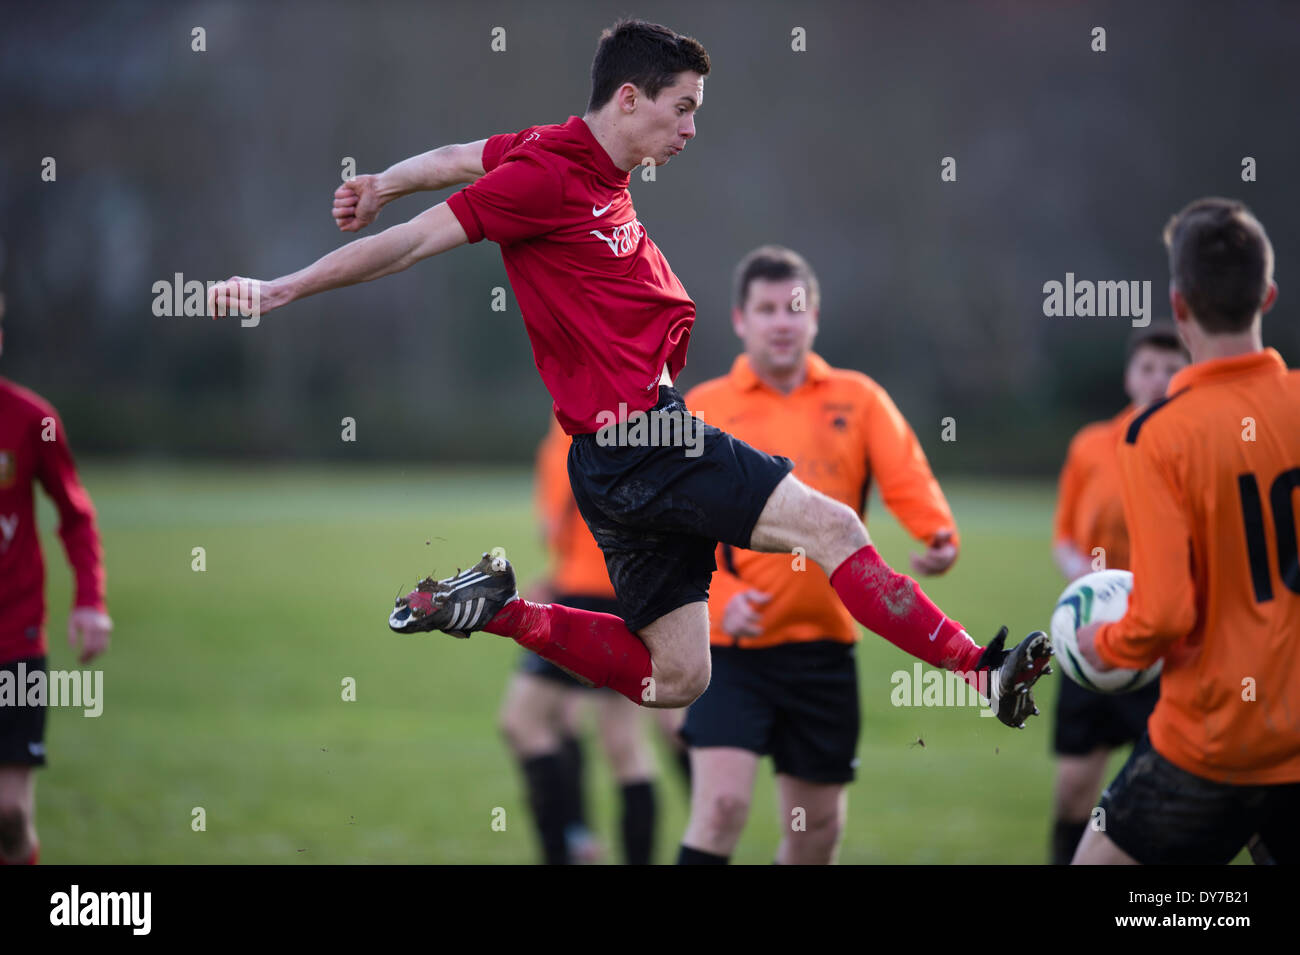 Amateur footballers playing non-professional soccer on a saturday afternoon in a park, UK - Stock Image